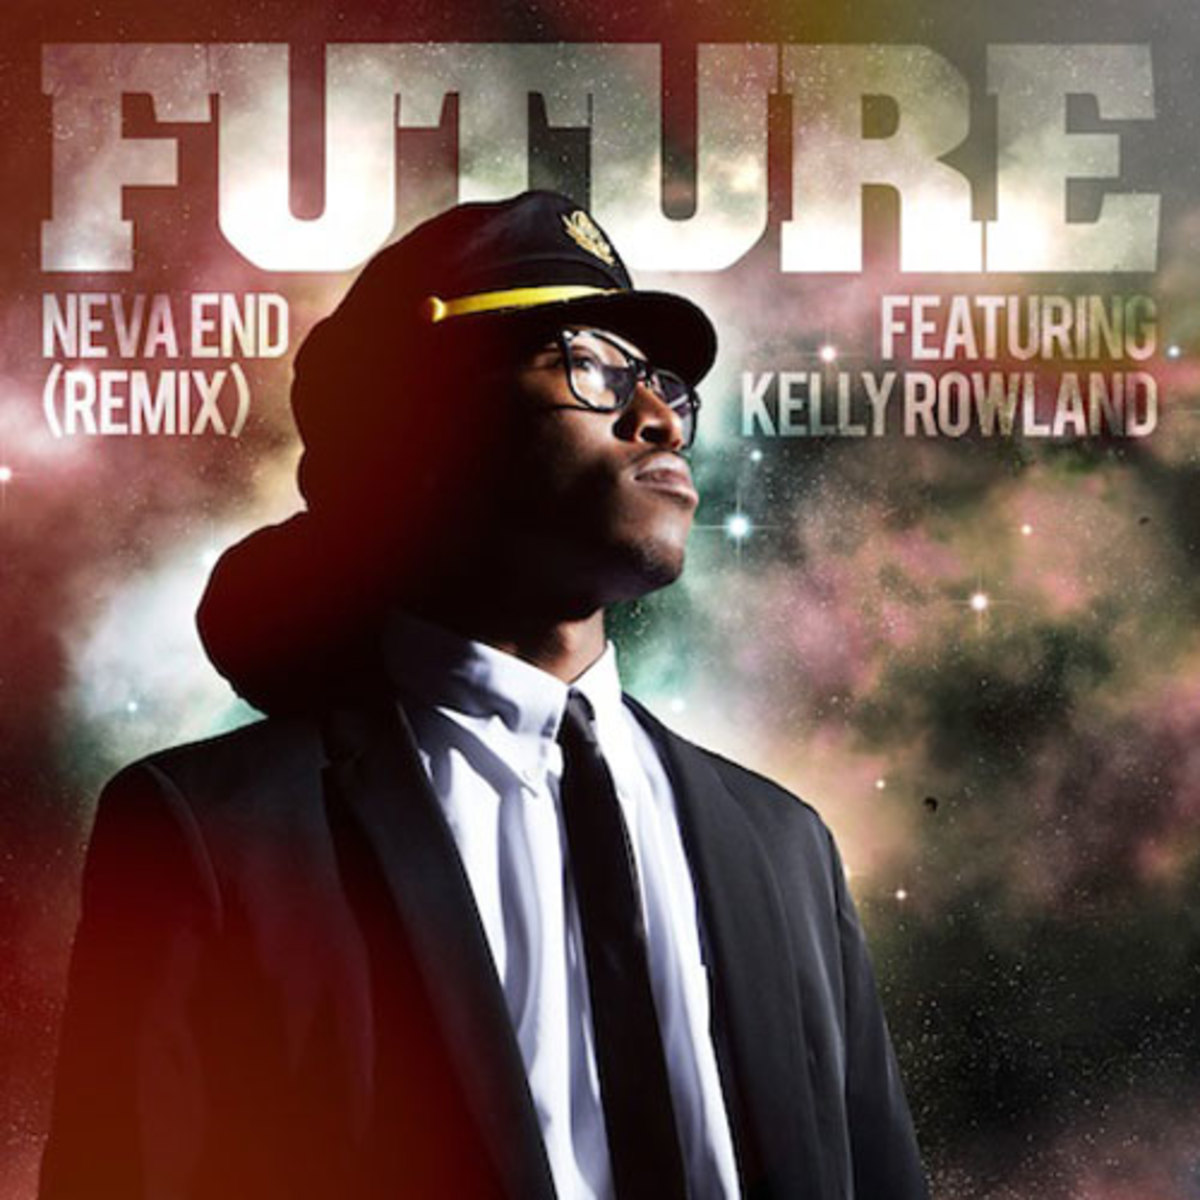 future-nevaendrmx.jpg